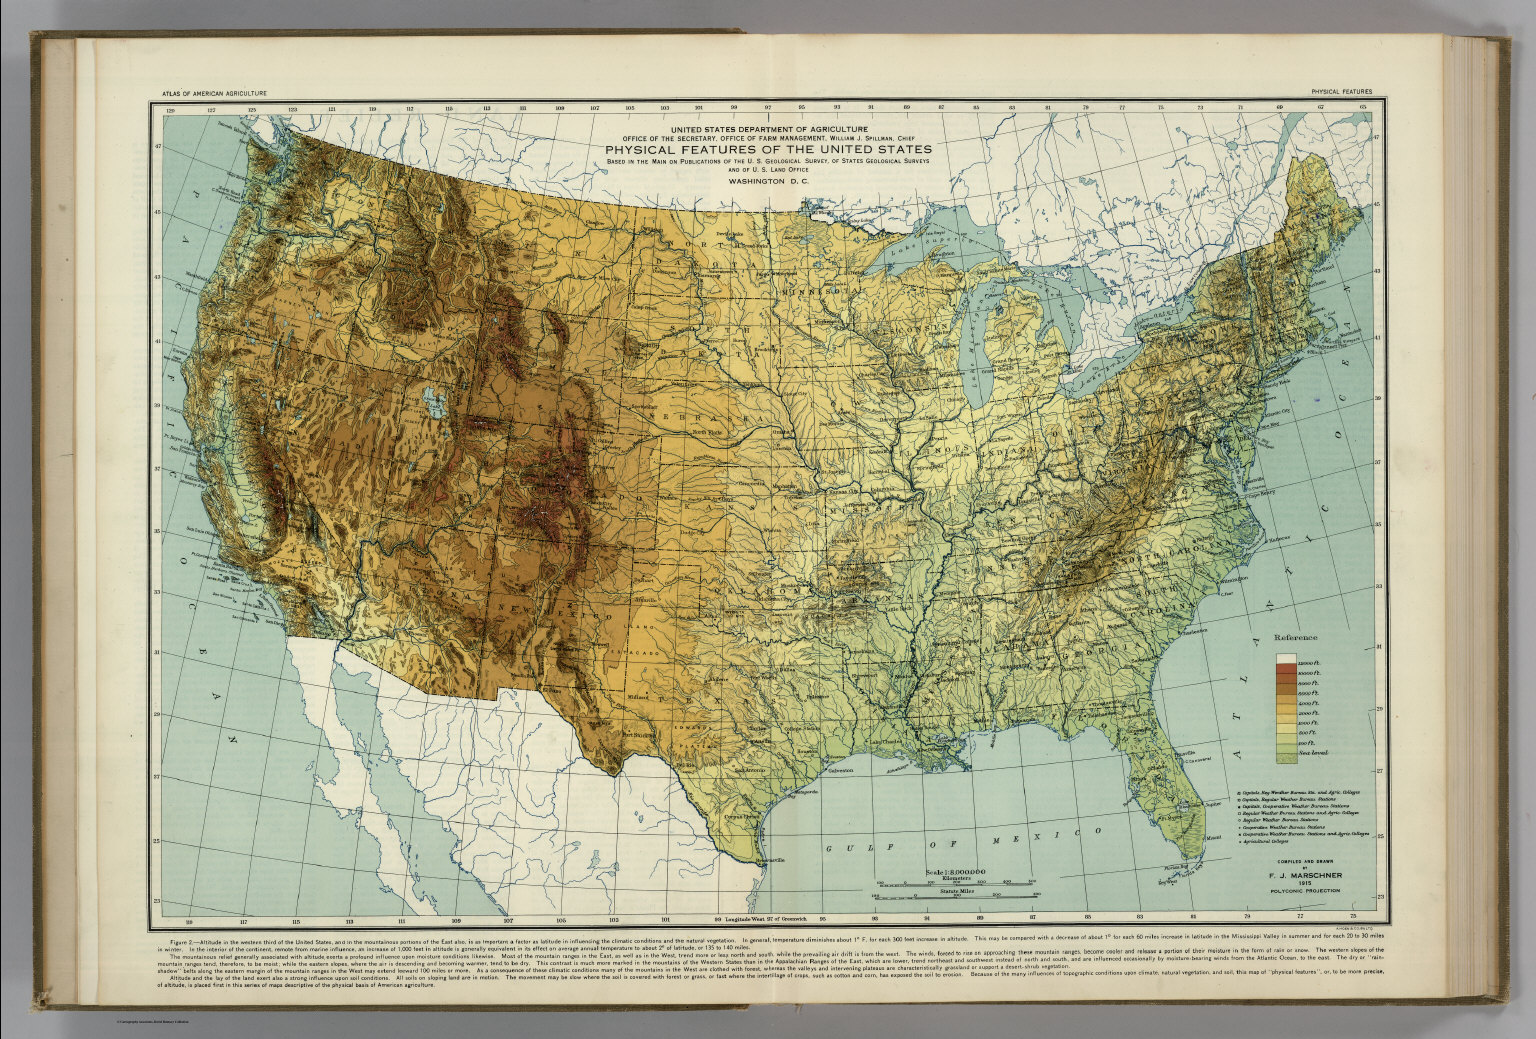 Physical Features of the United States Atlas of American